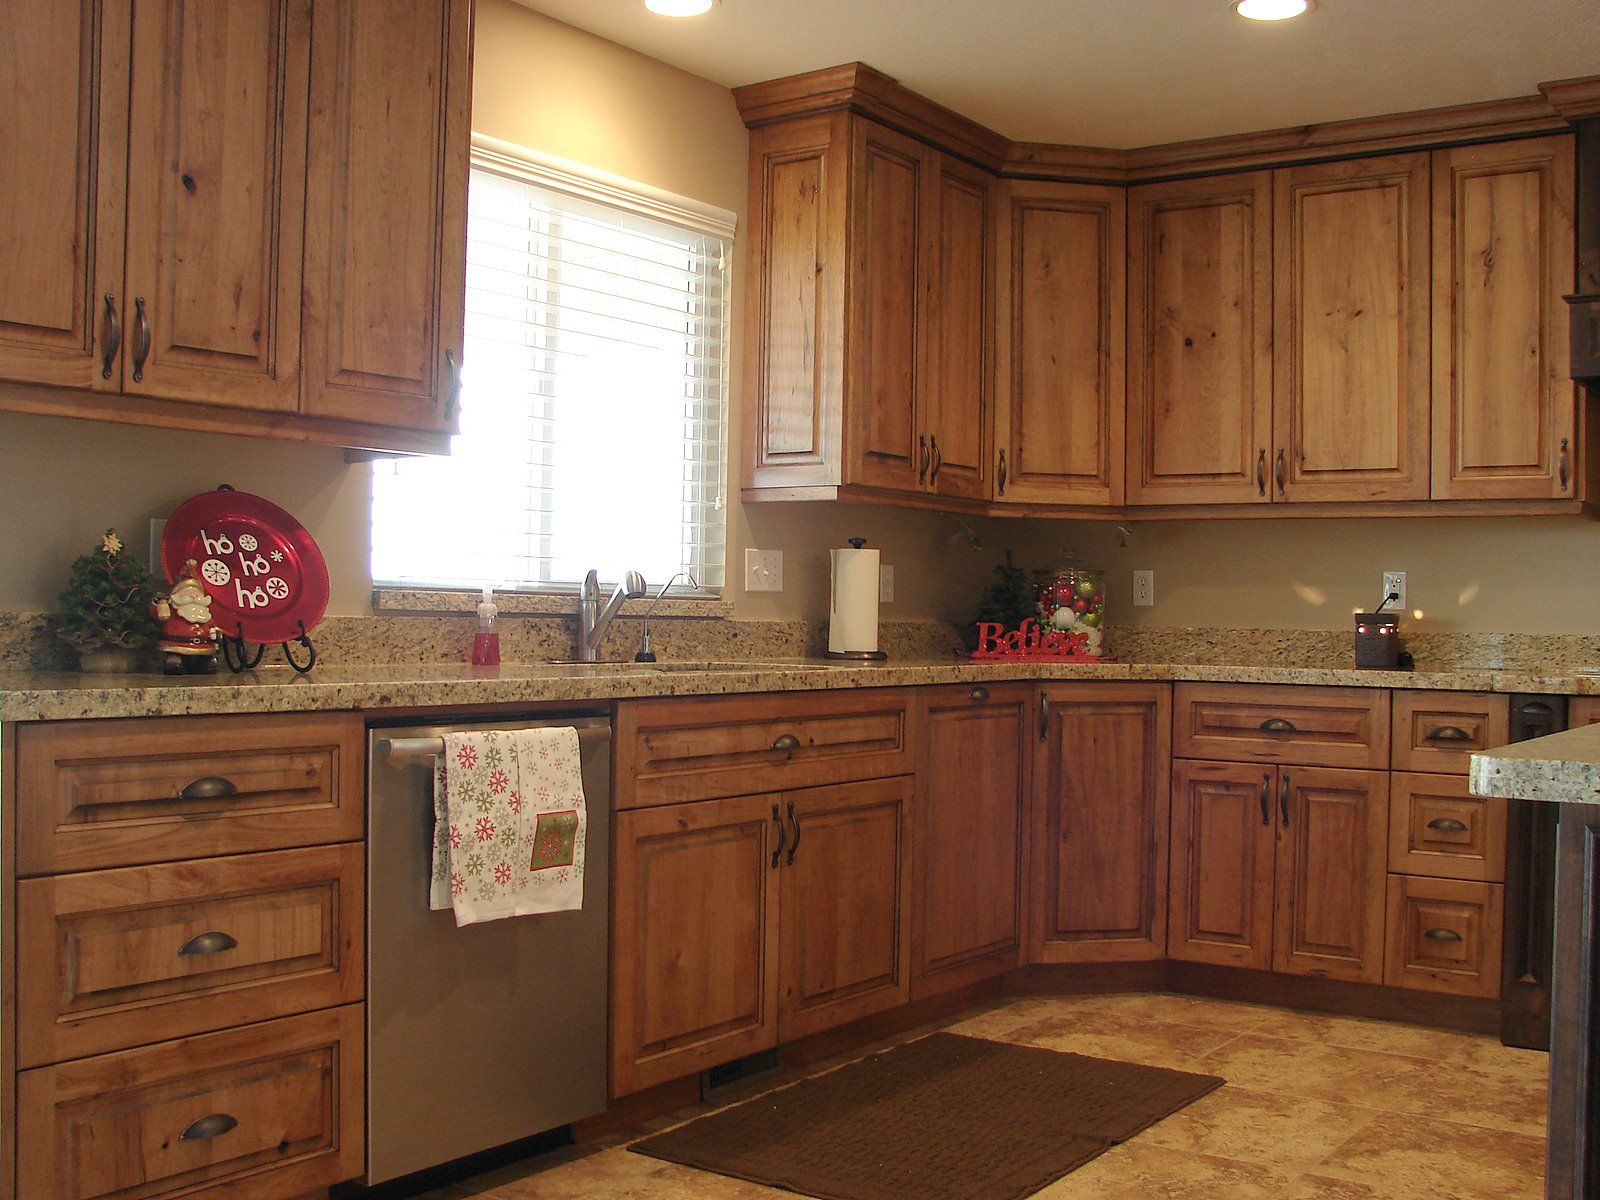 Kitchen Cabinets Pictures best 25+ cherry kitchen cabinets ideas on pinterest | traditional